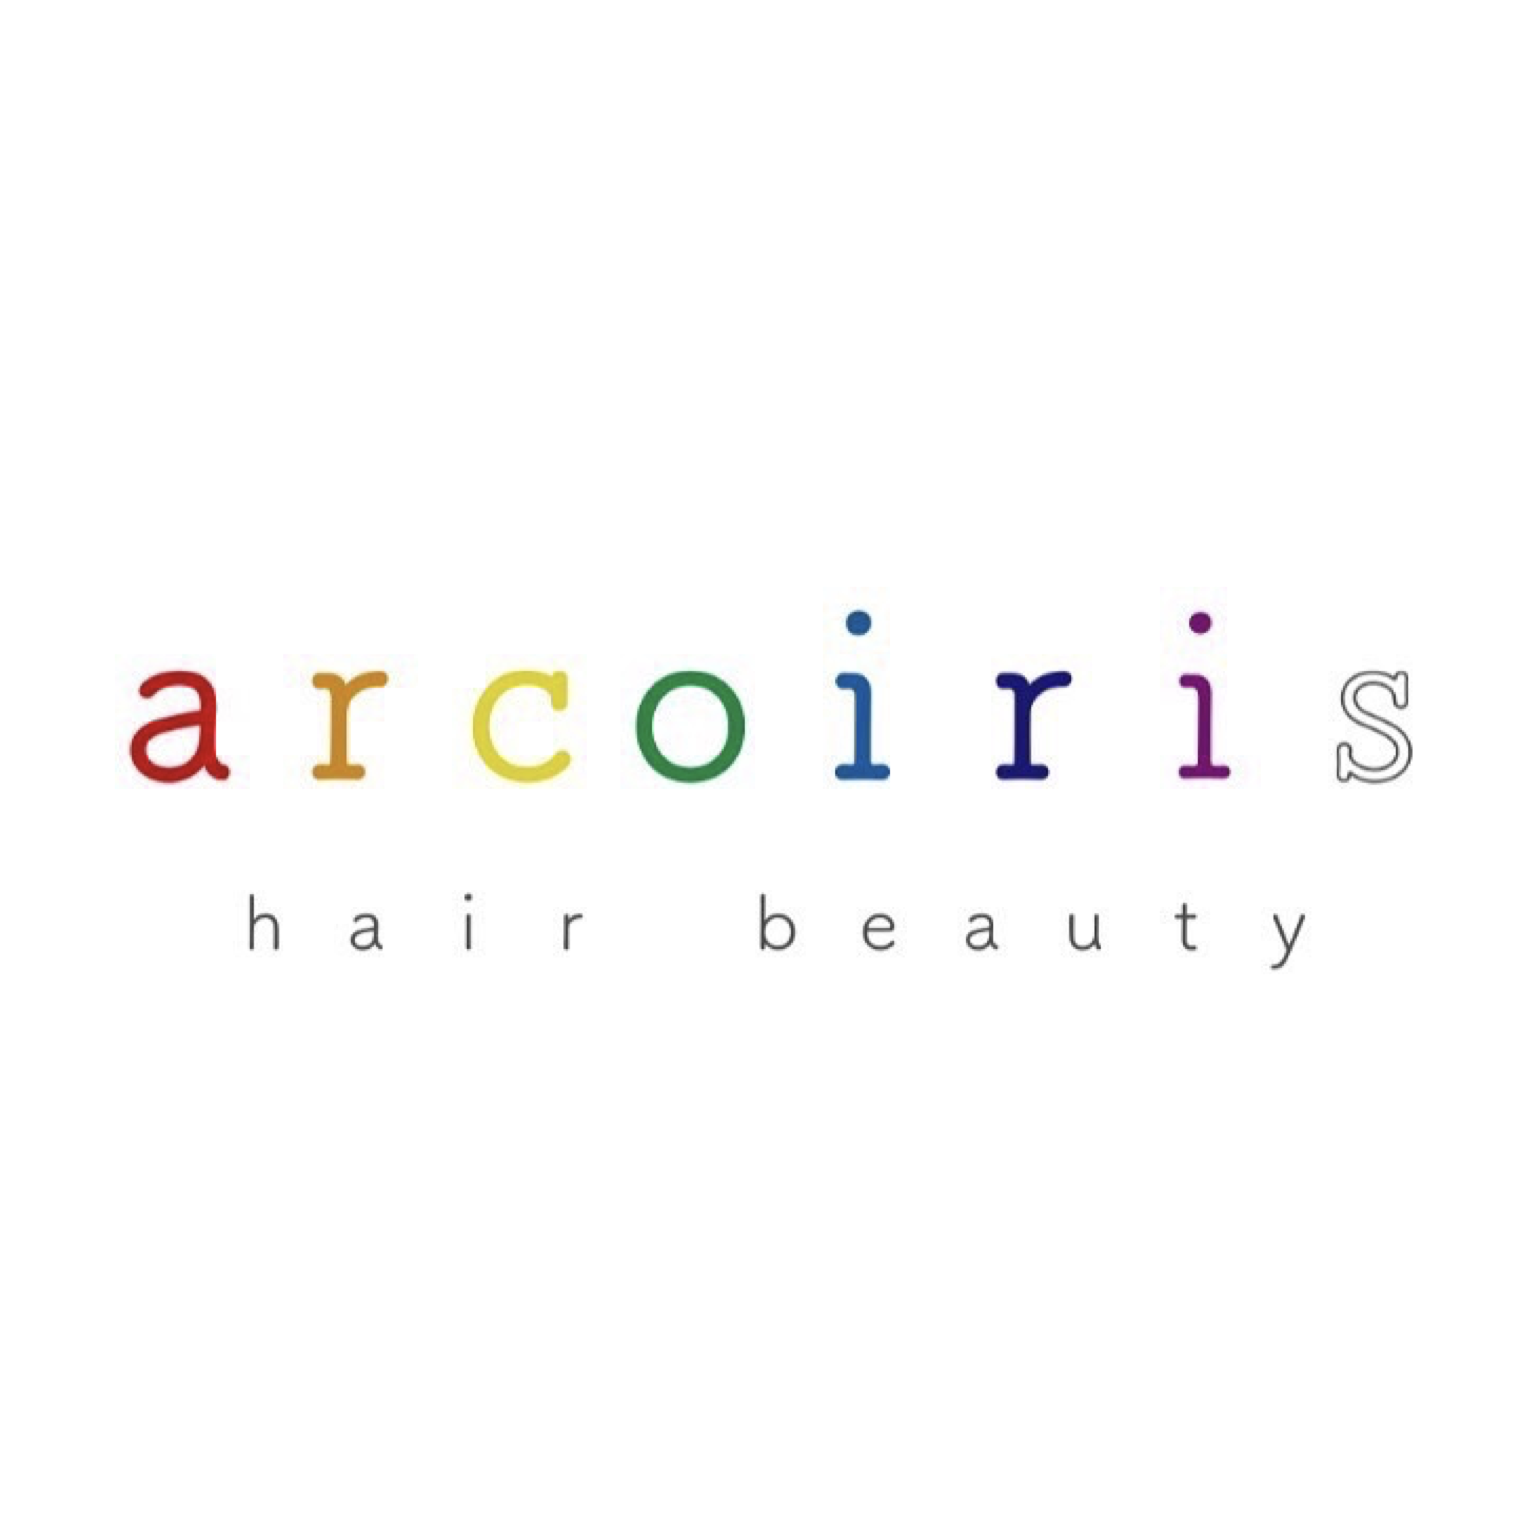 arcoiris hair beauty